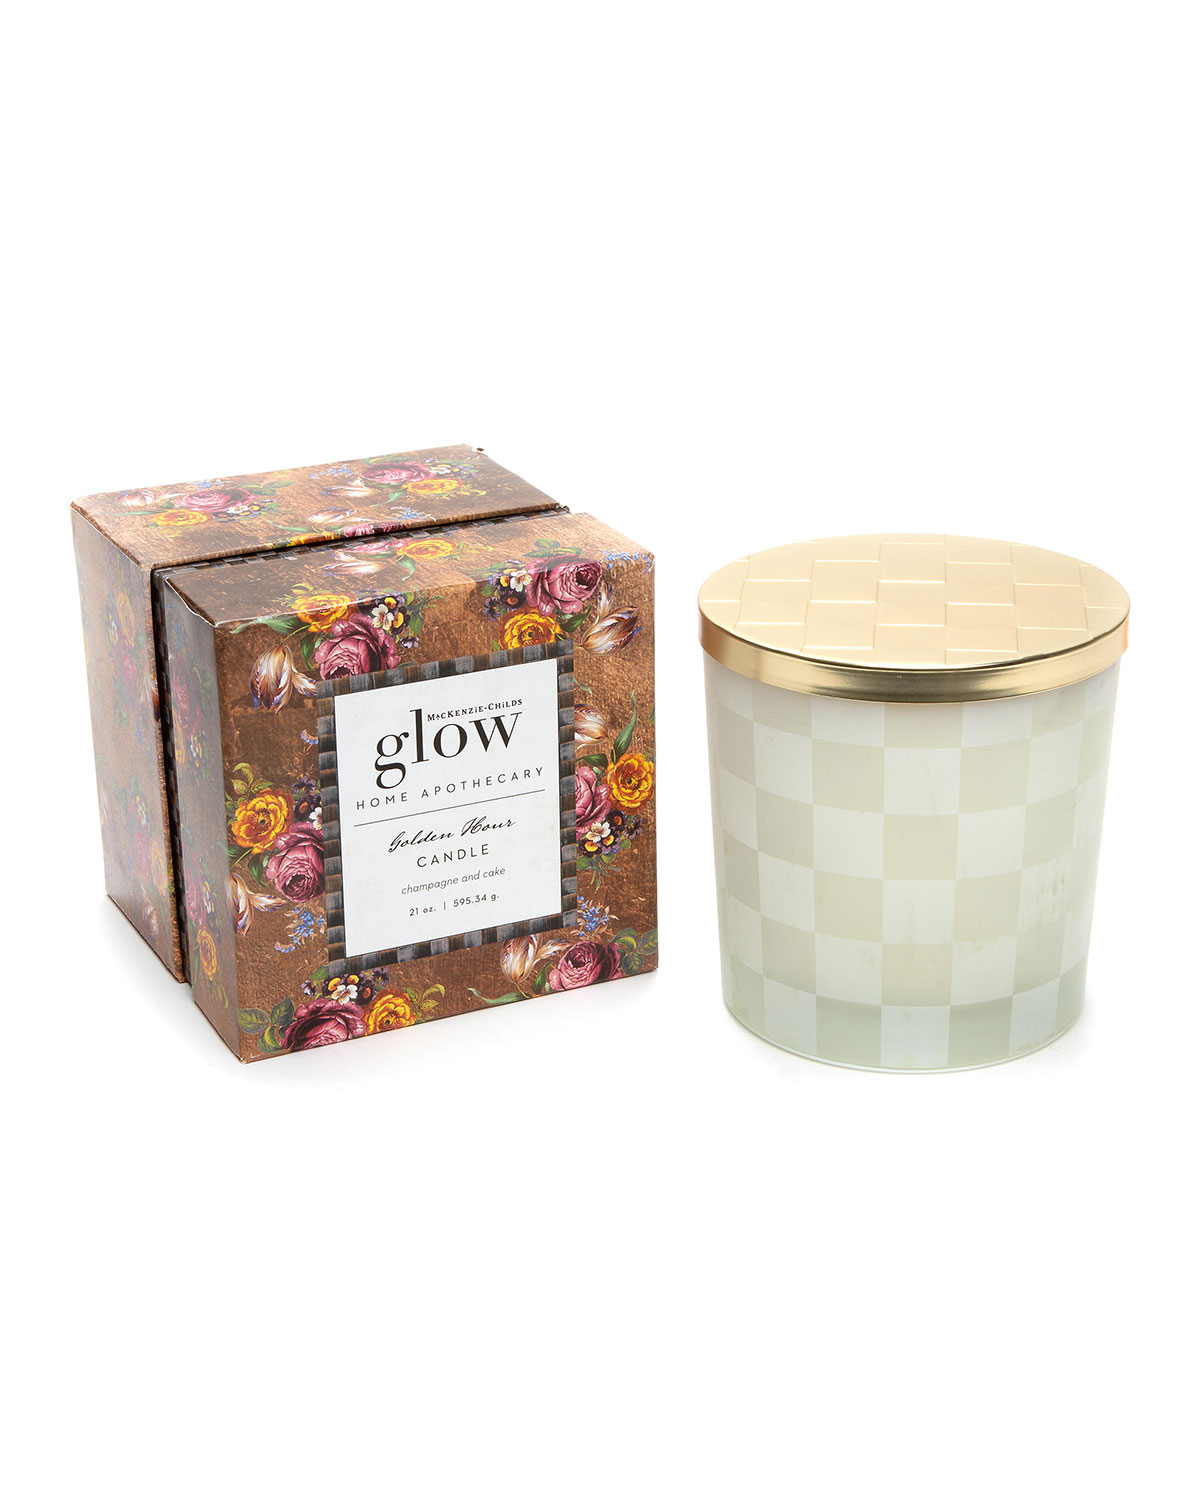 21 oz. Golden Hour Candle